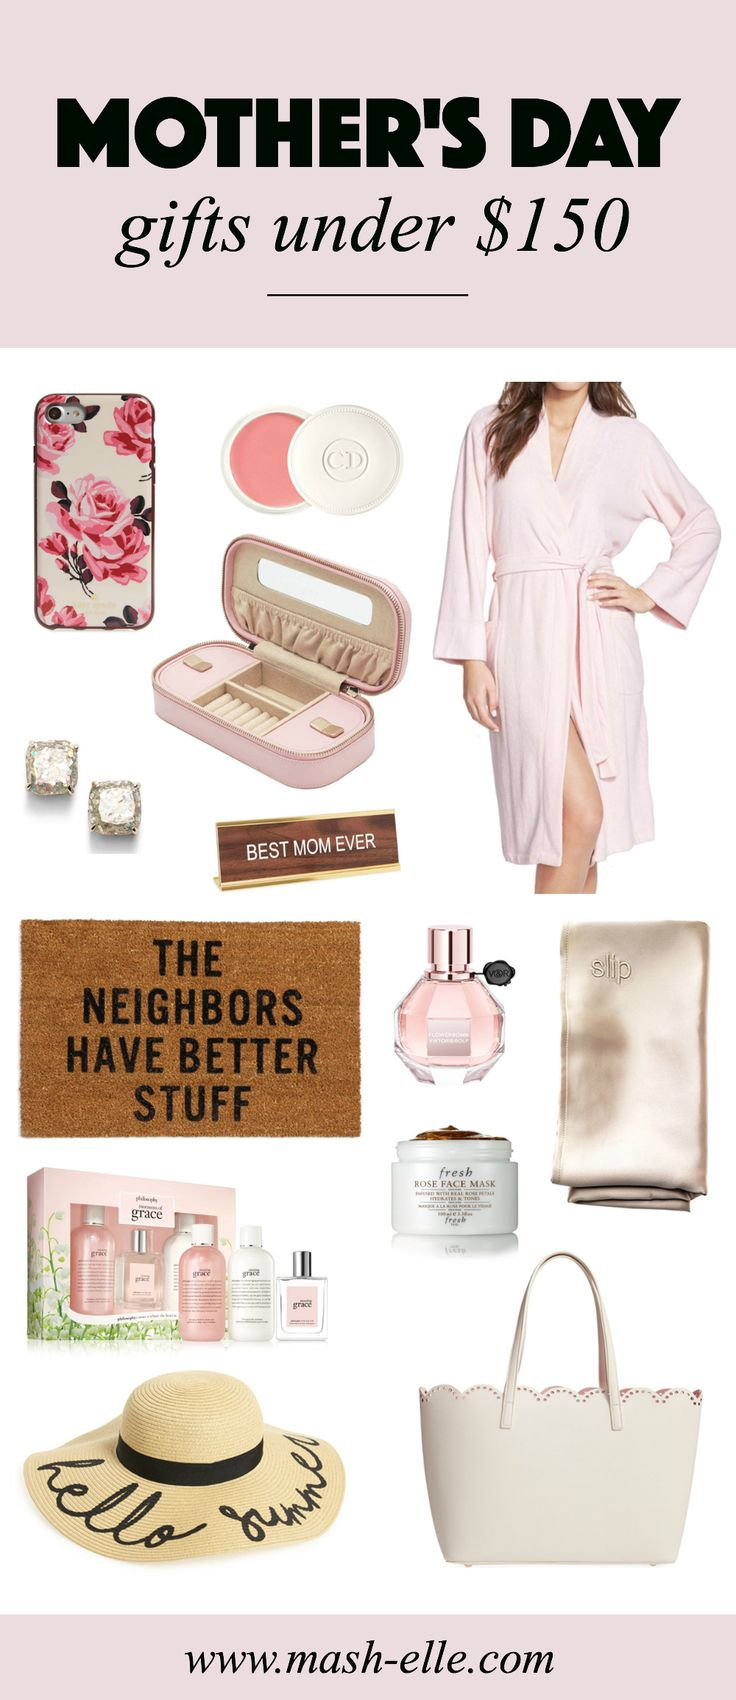 Looking for the perfect Mother's Day gift?! I've got you covered! | | Blogger Mash Elle rounds up some of the best gift ideas for Mother's Day. Spoil the moms in your life with affordable home decor, fashion, beauty and kitchenware gifts!